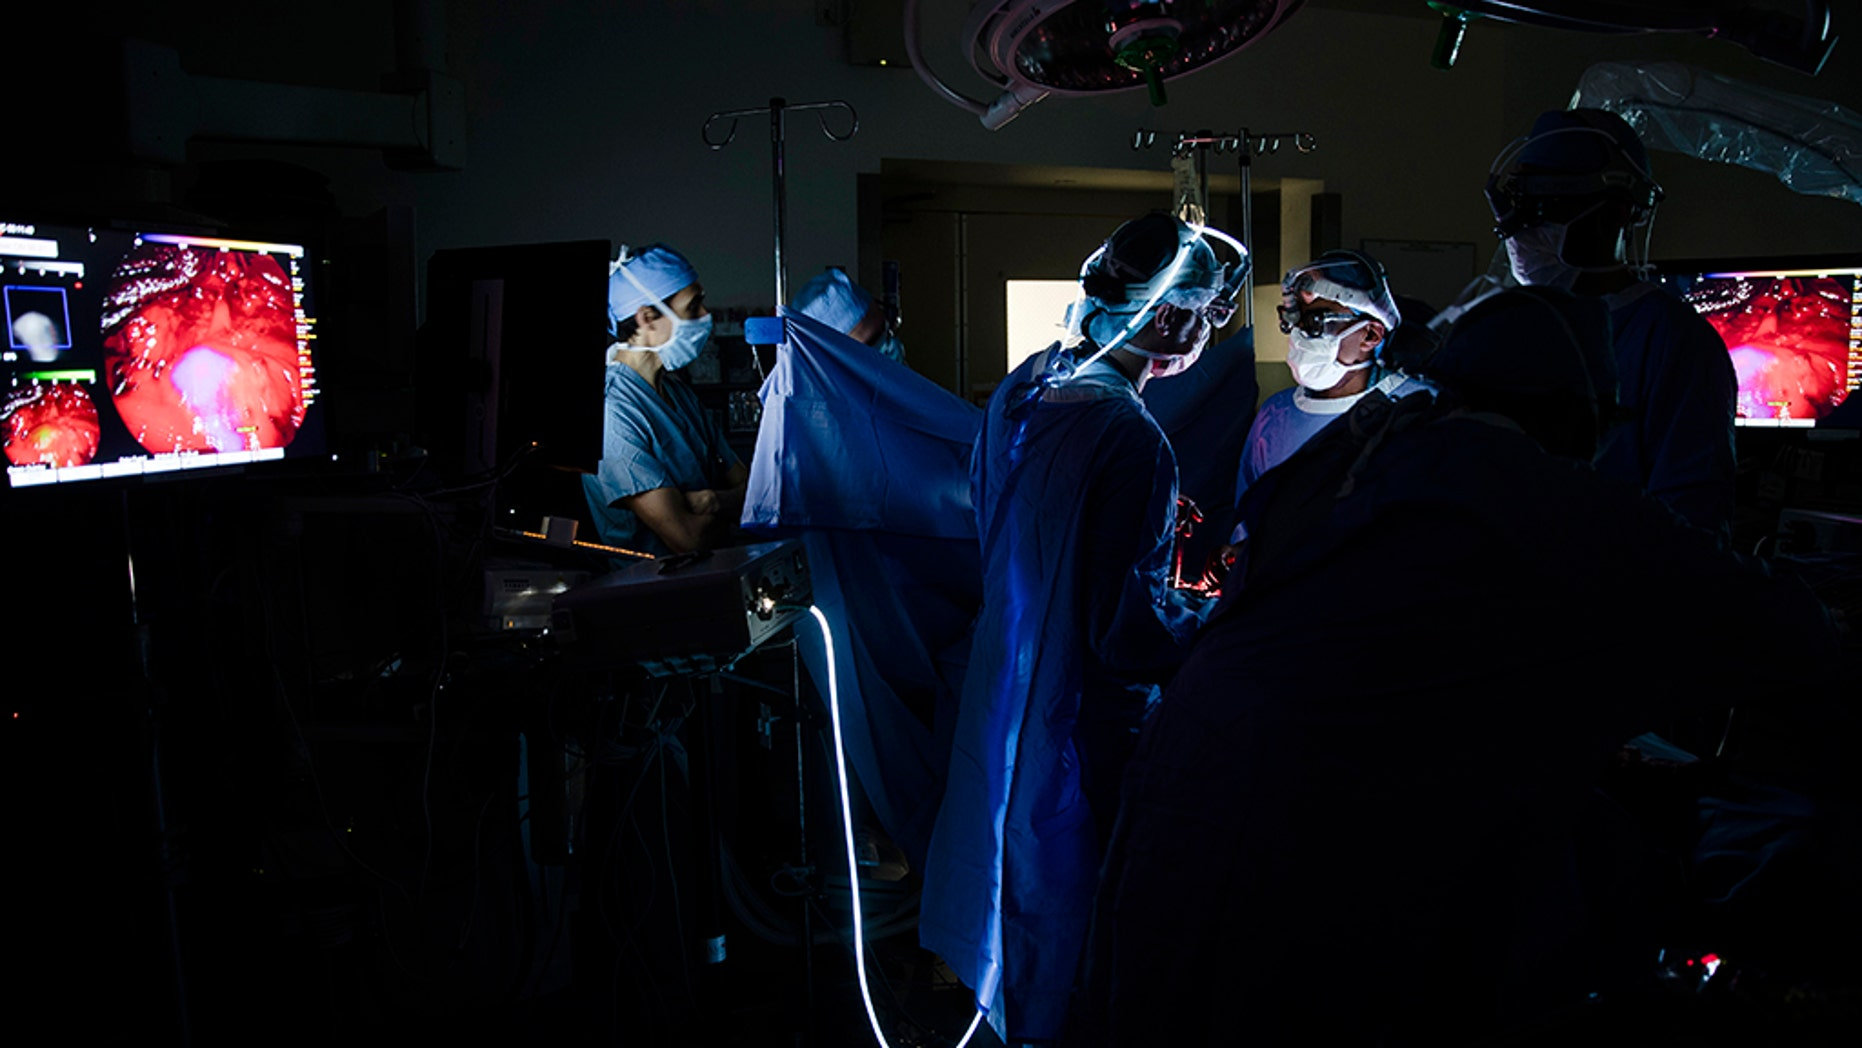 Dr. Sunil Singhal, second from right, directs a special camera to view a tumor in his patient made visible with a fluorescent dye, seen at monitor on right, at the Hospital of the University of Pennsylvania.